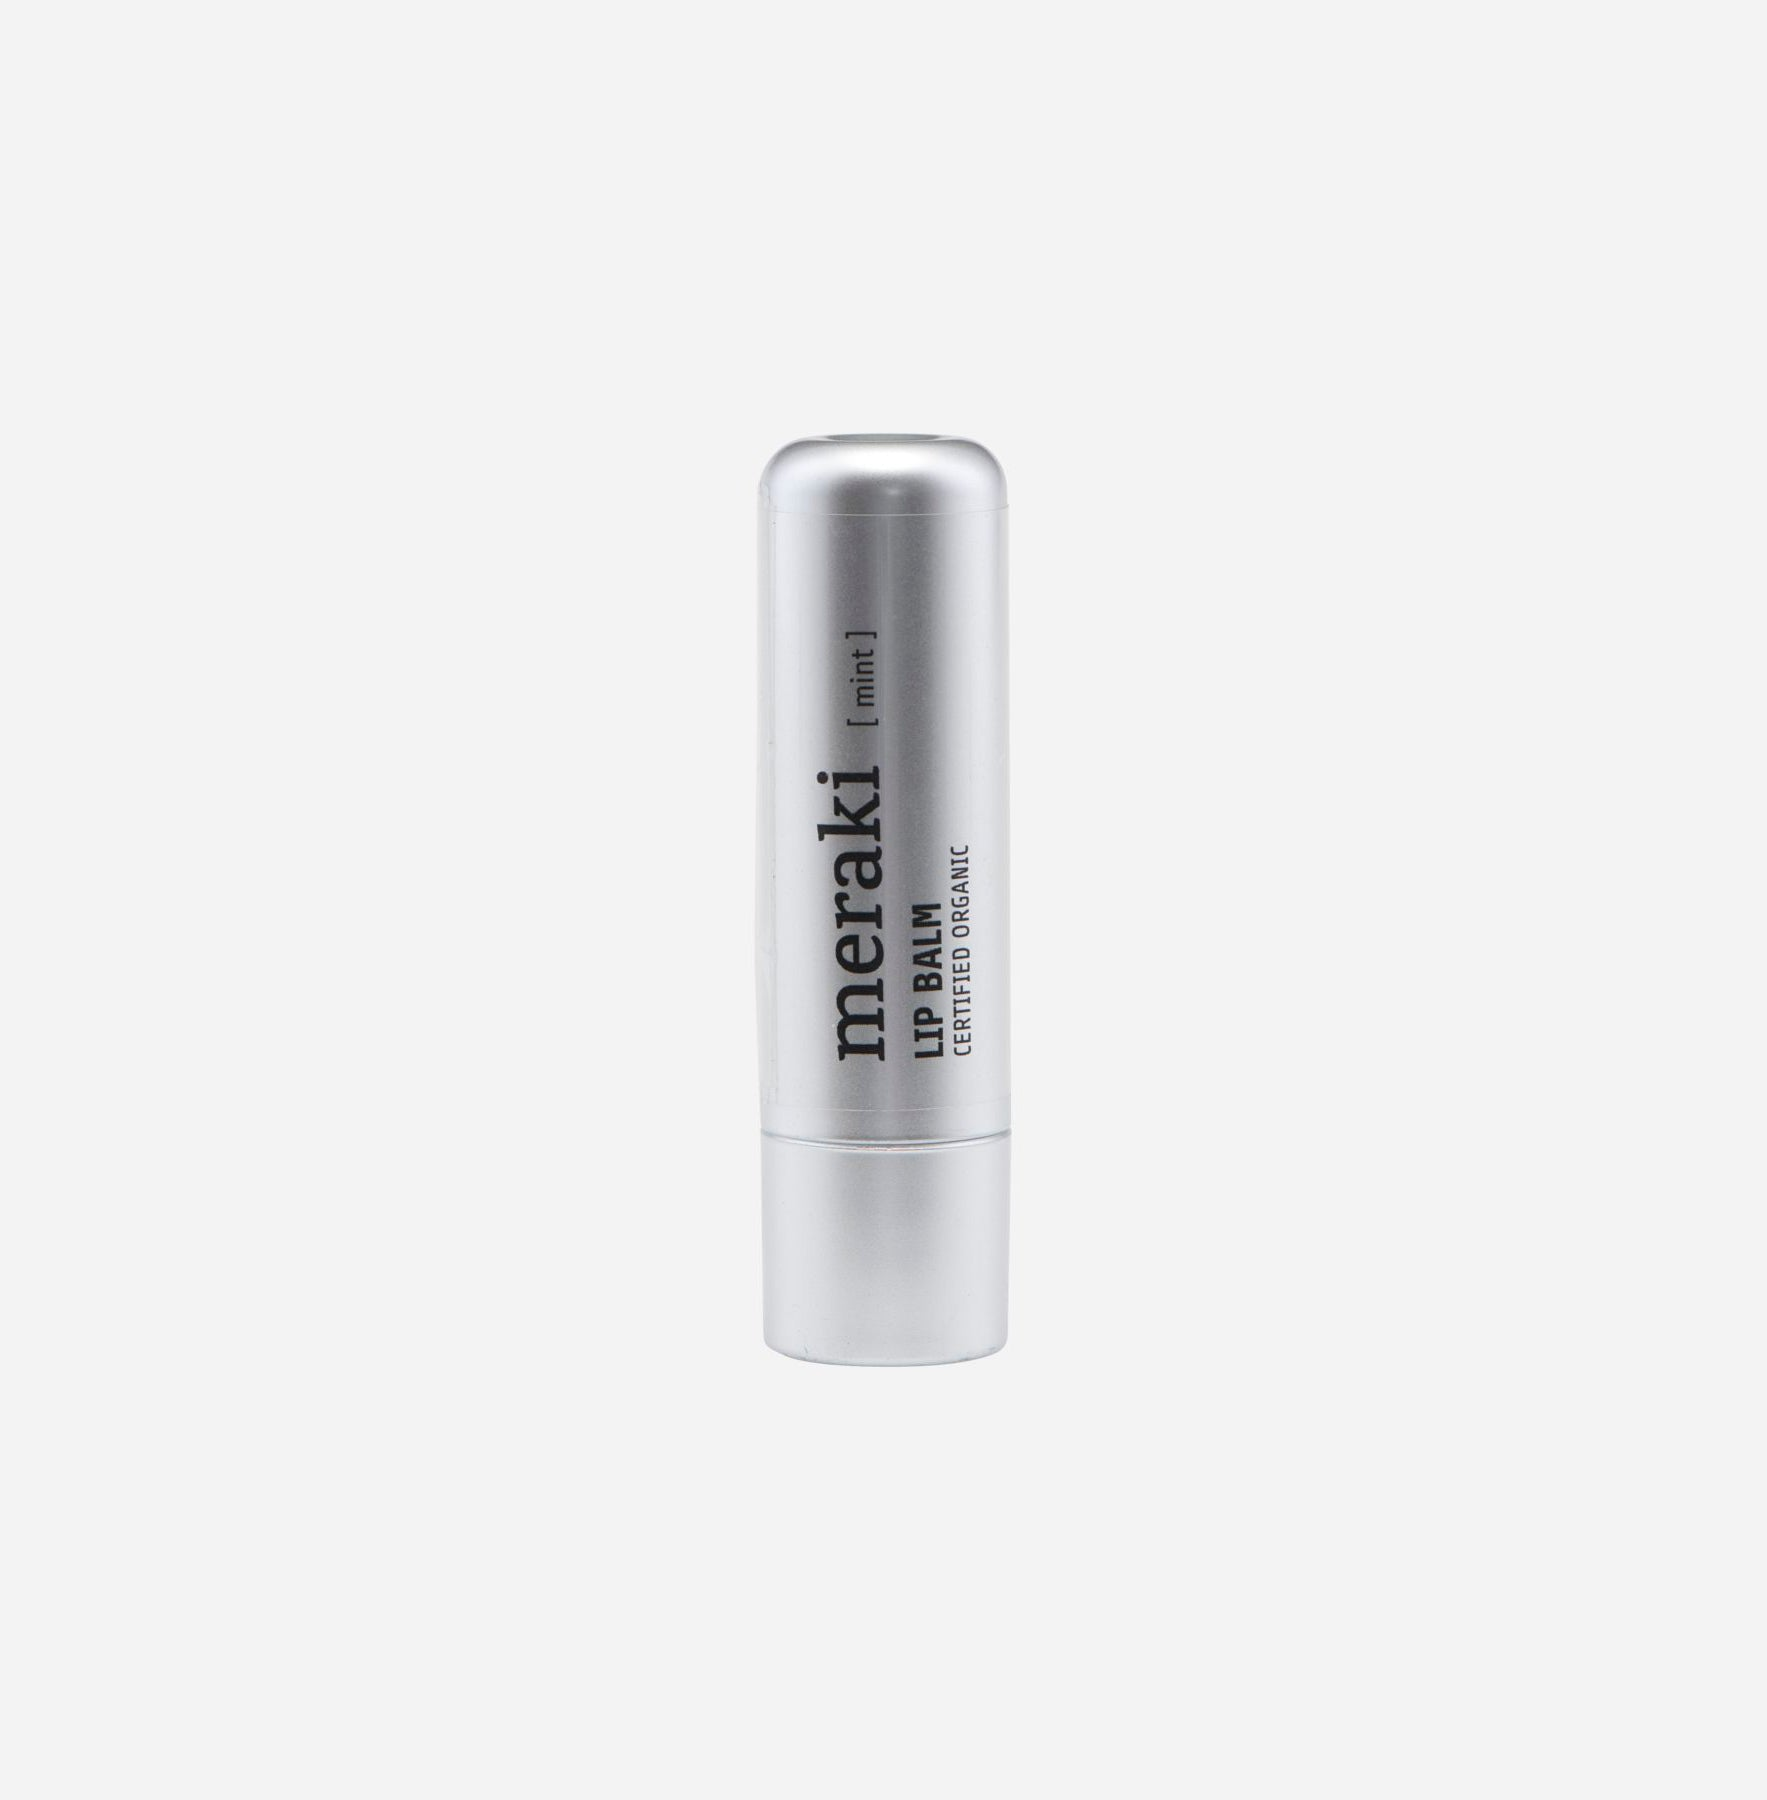 Meraki Gloss Lip balm, Mint